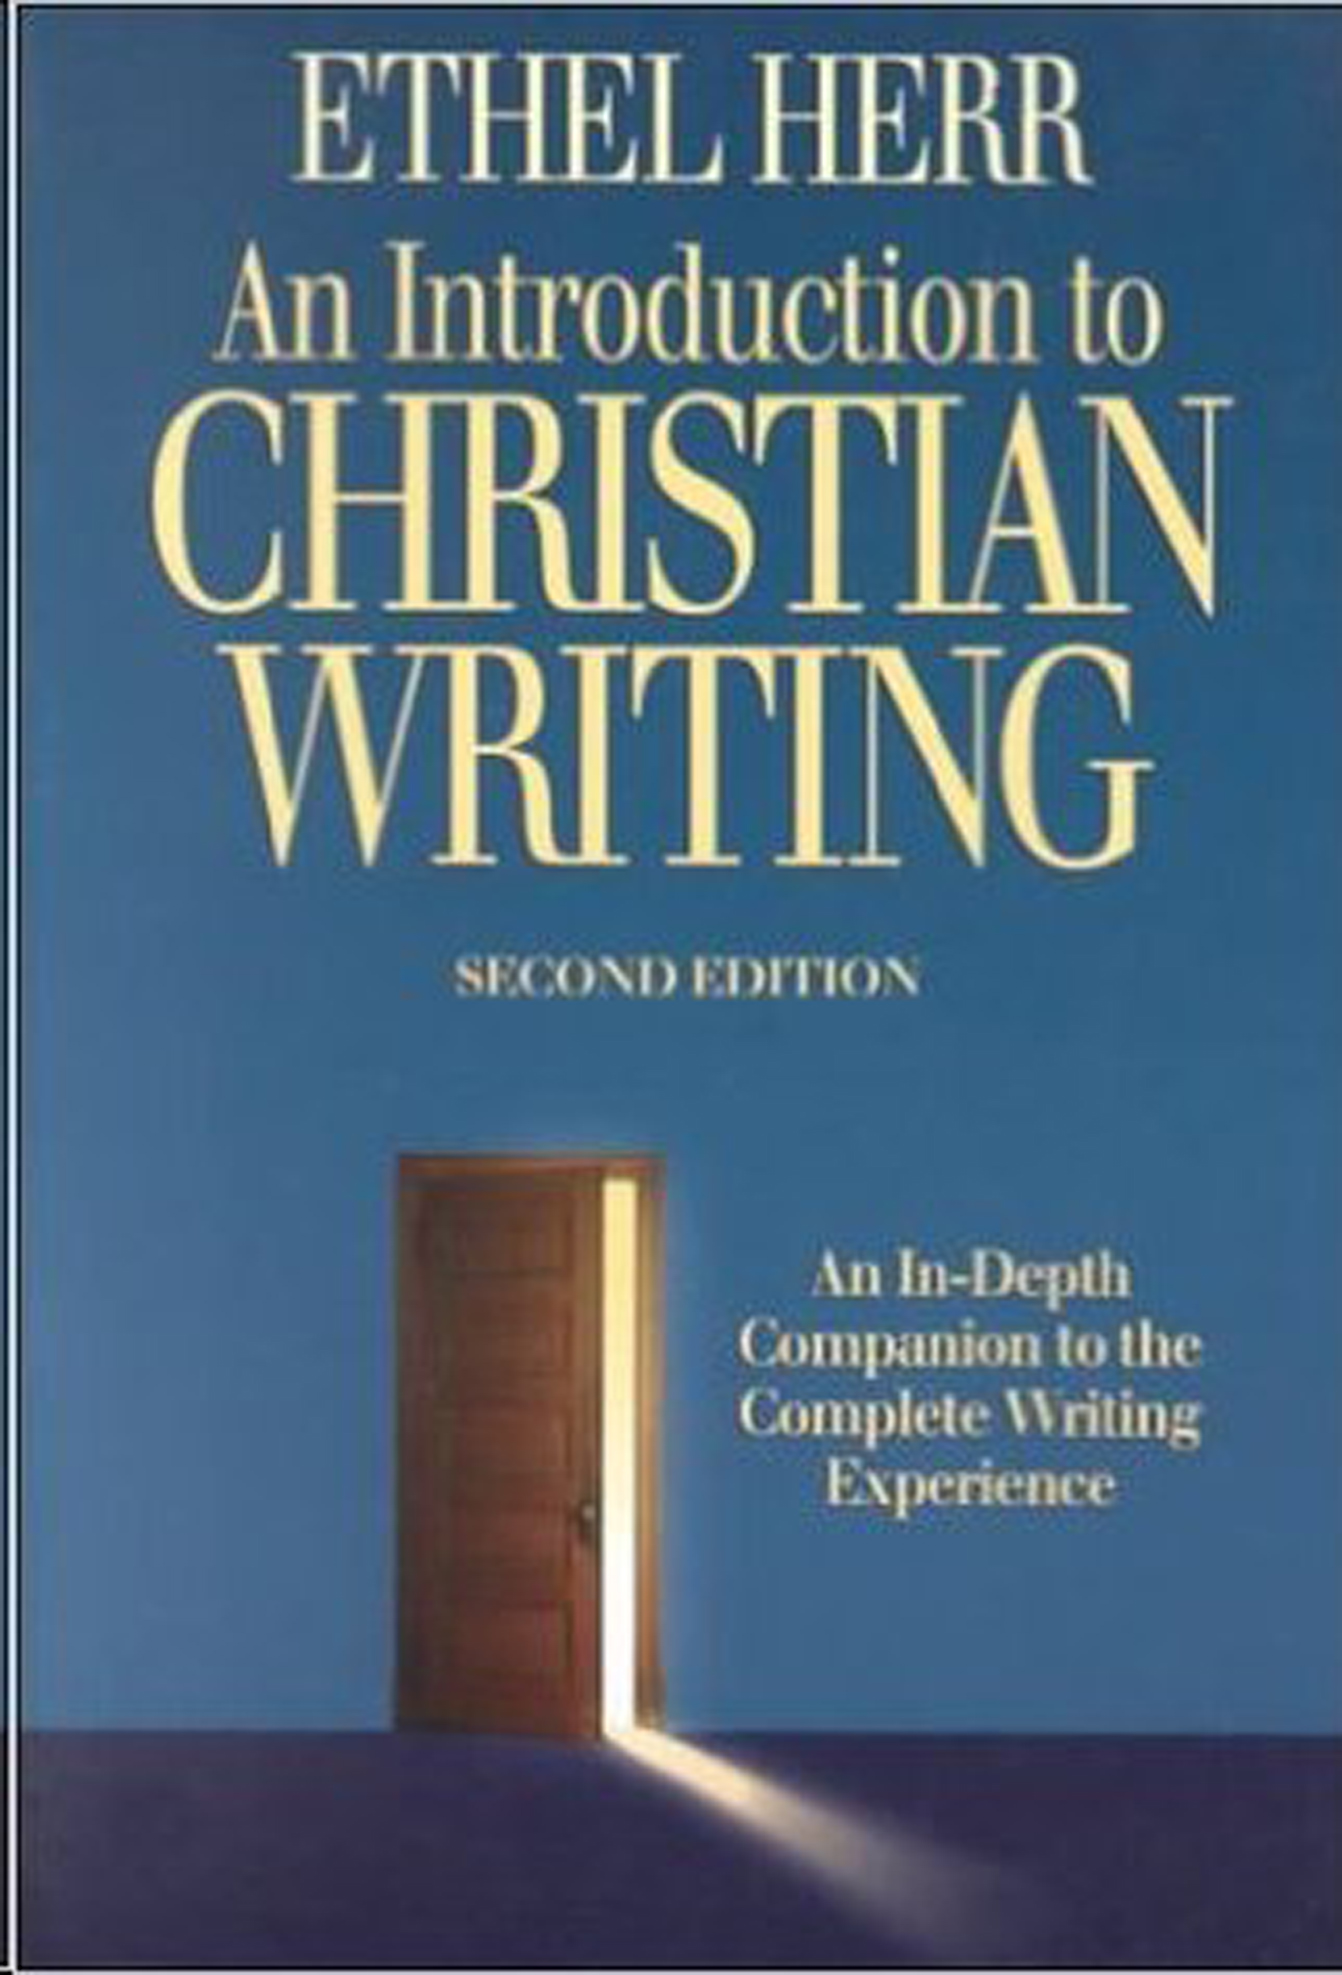 An Introduction to Christian Writing